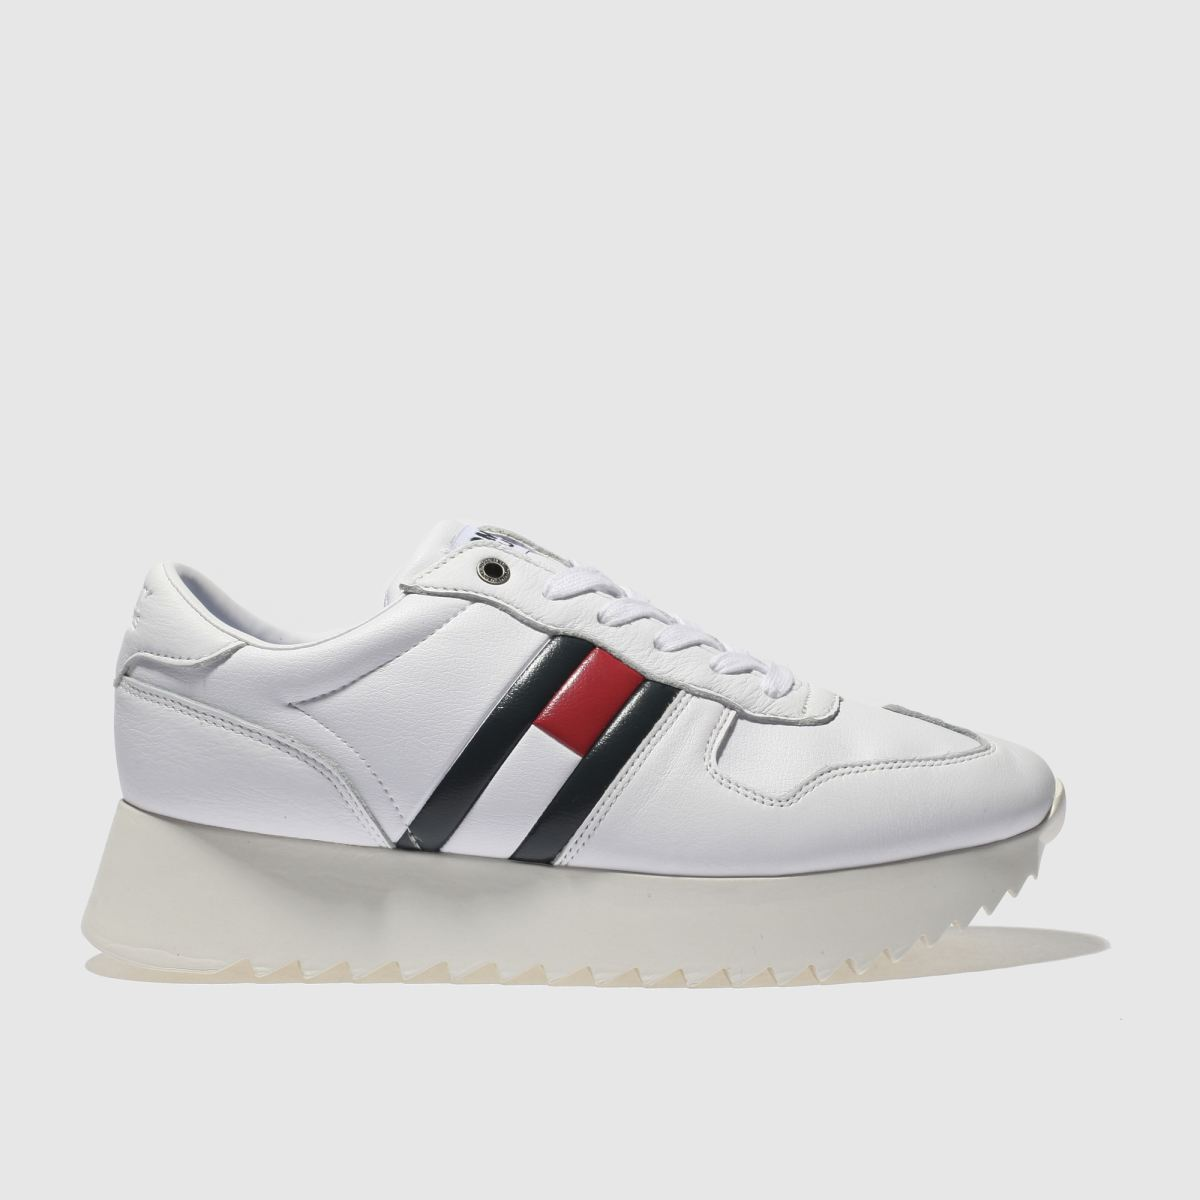 Tommy Hilfiger White High Cleated Sneaker Trainers